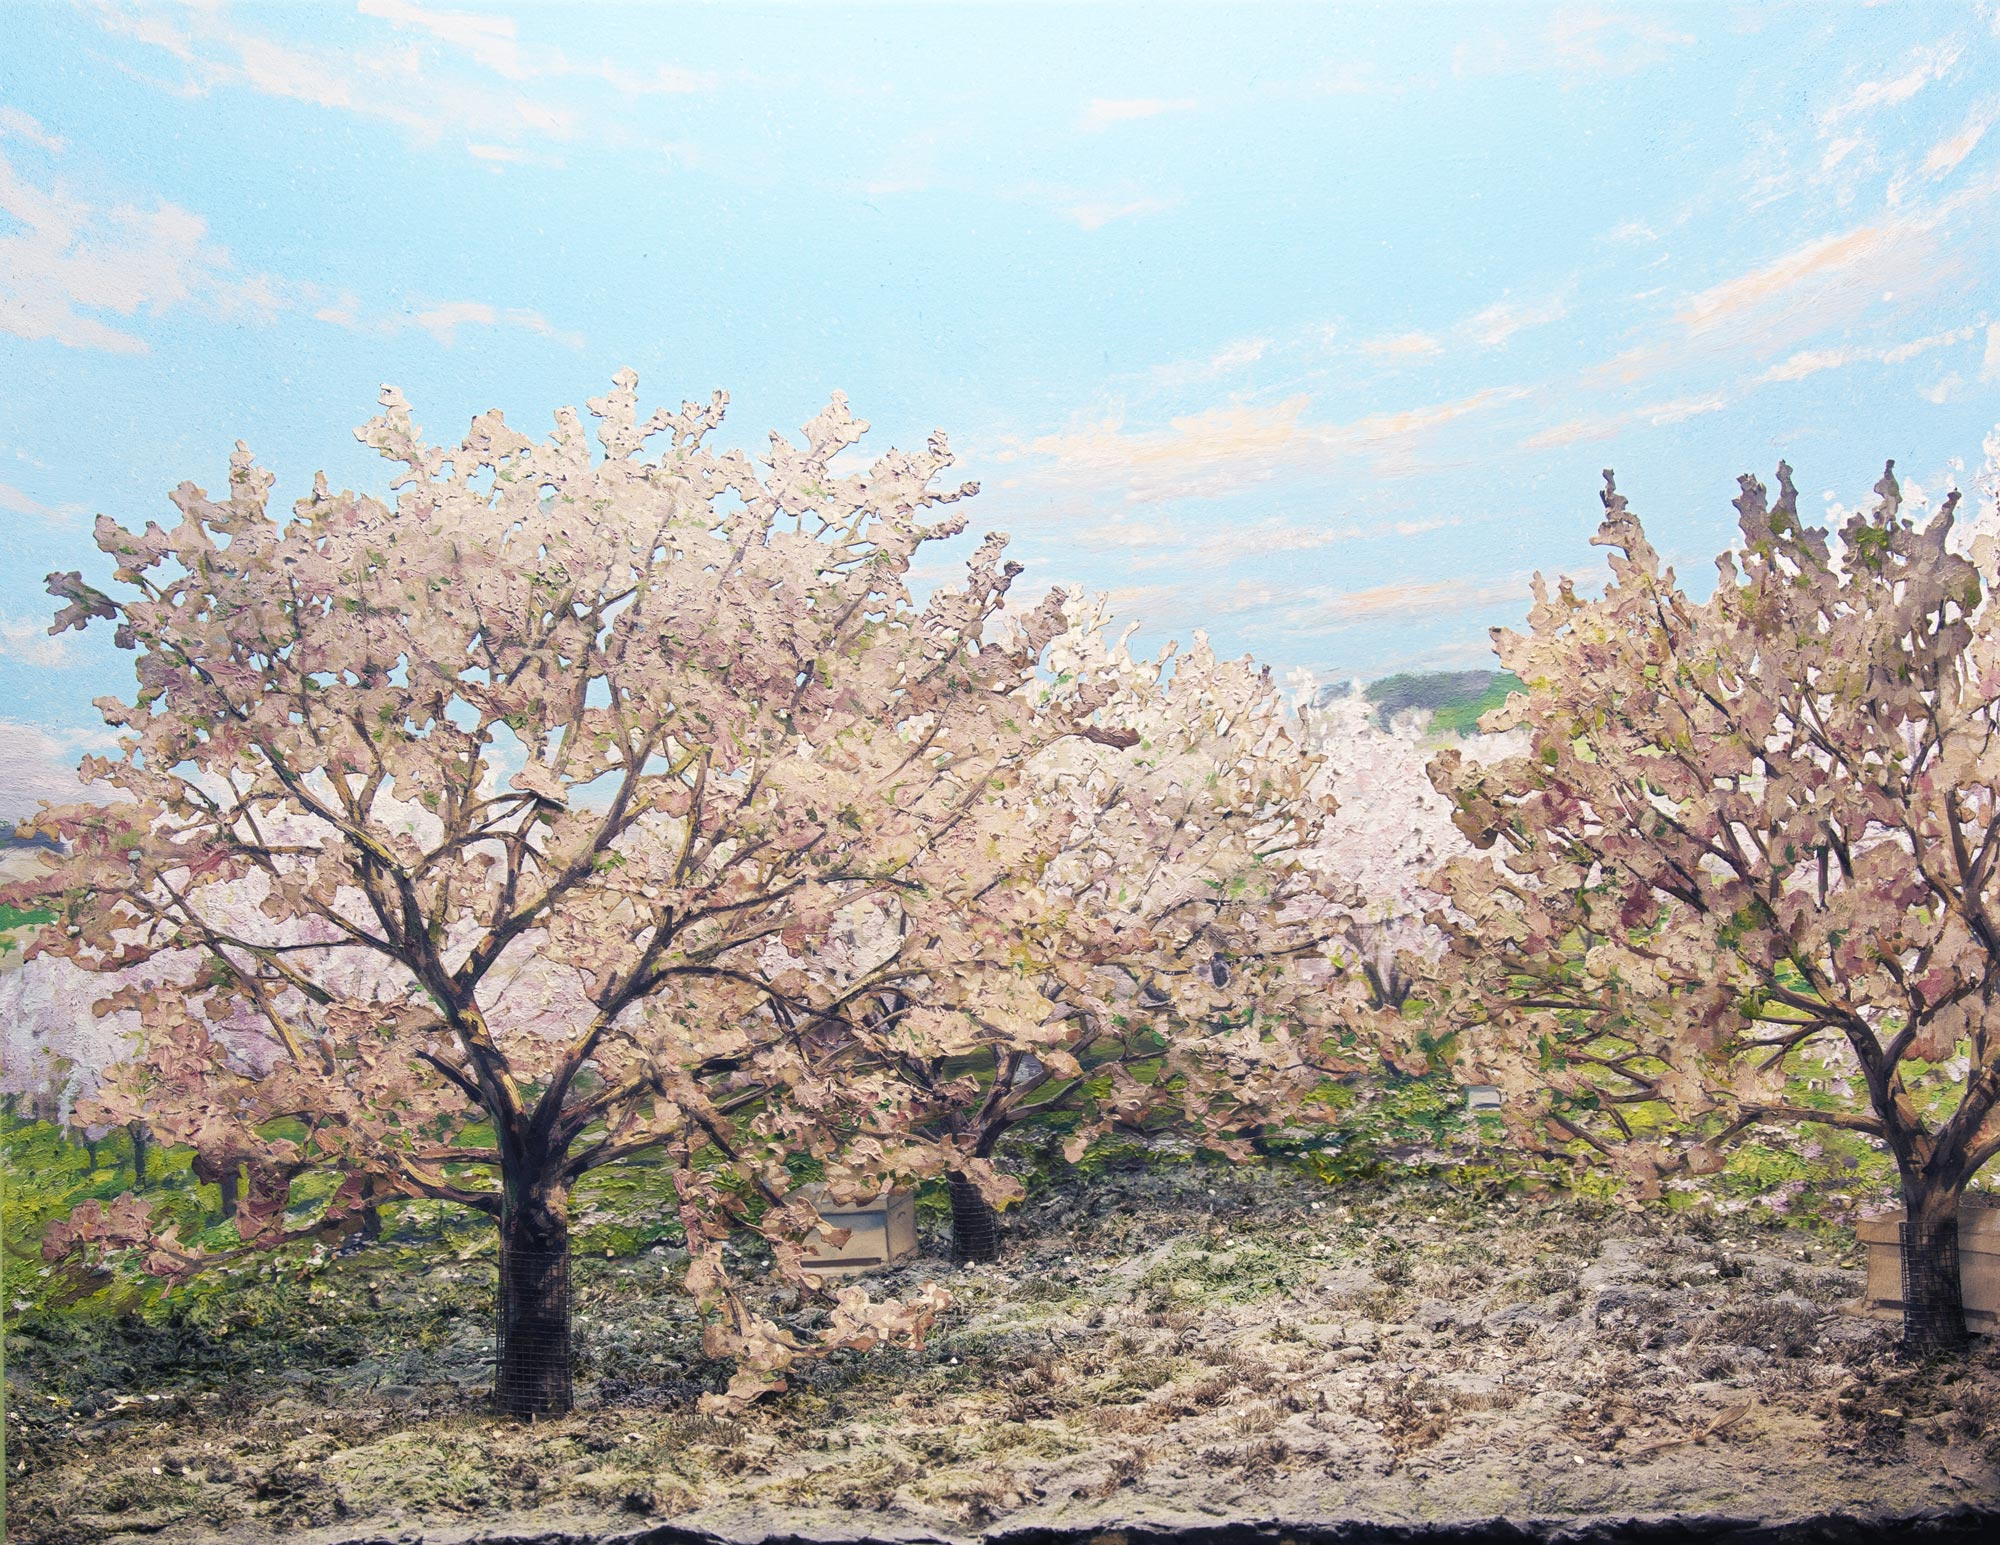 Diorama of a flowering apple orchard.